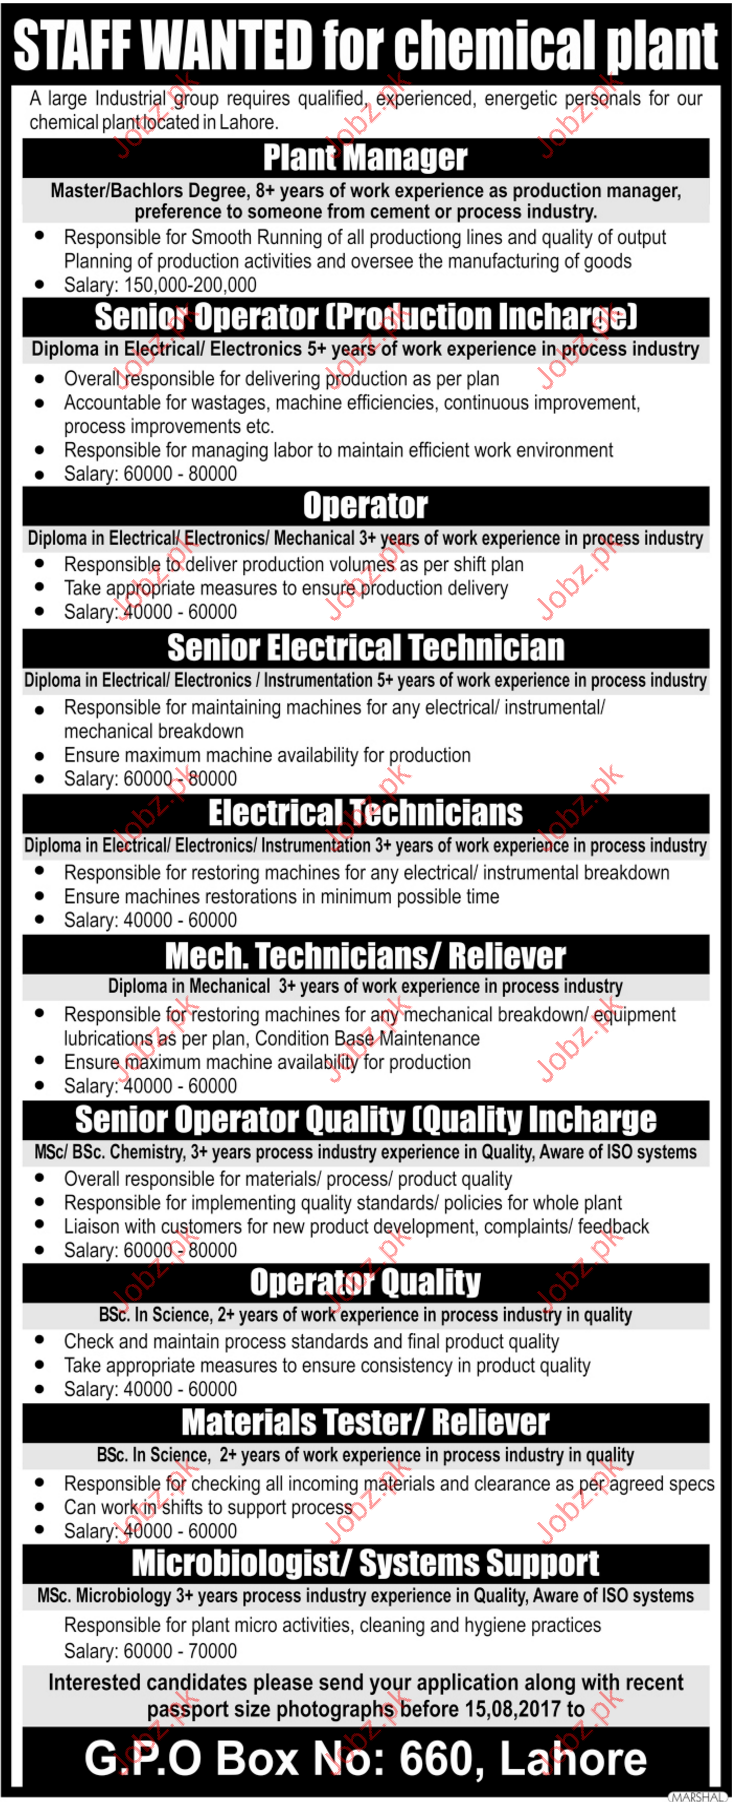 Staff Required for Chemical Plant 2019 Job Advertisement